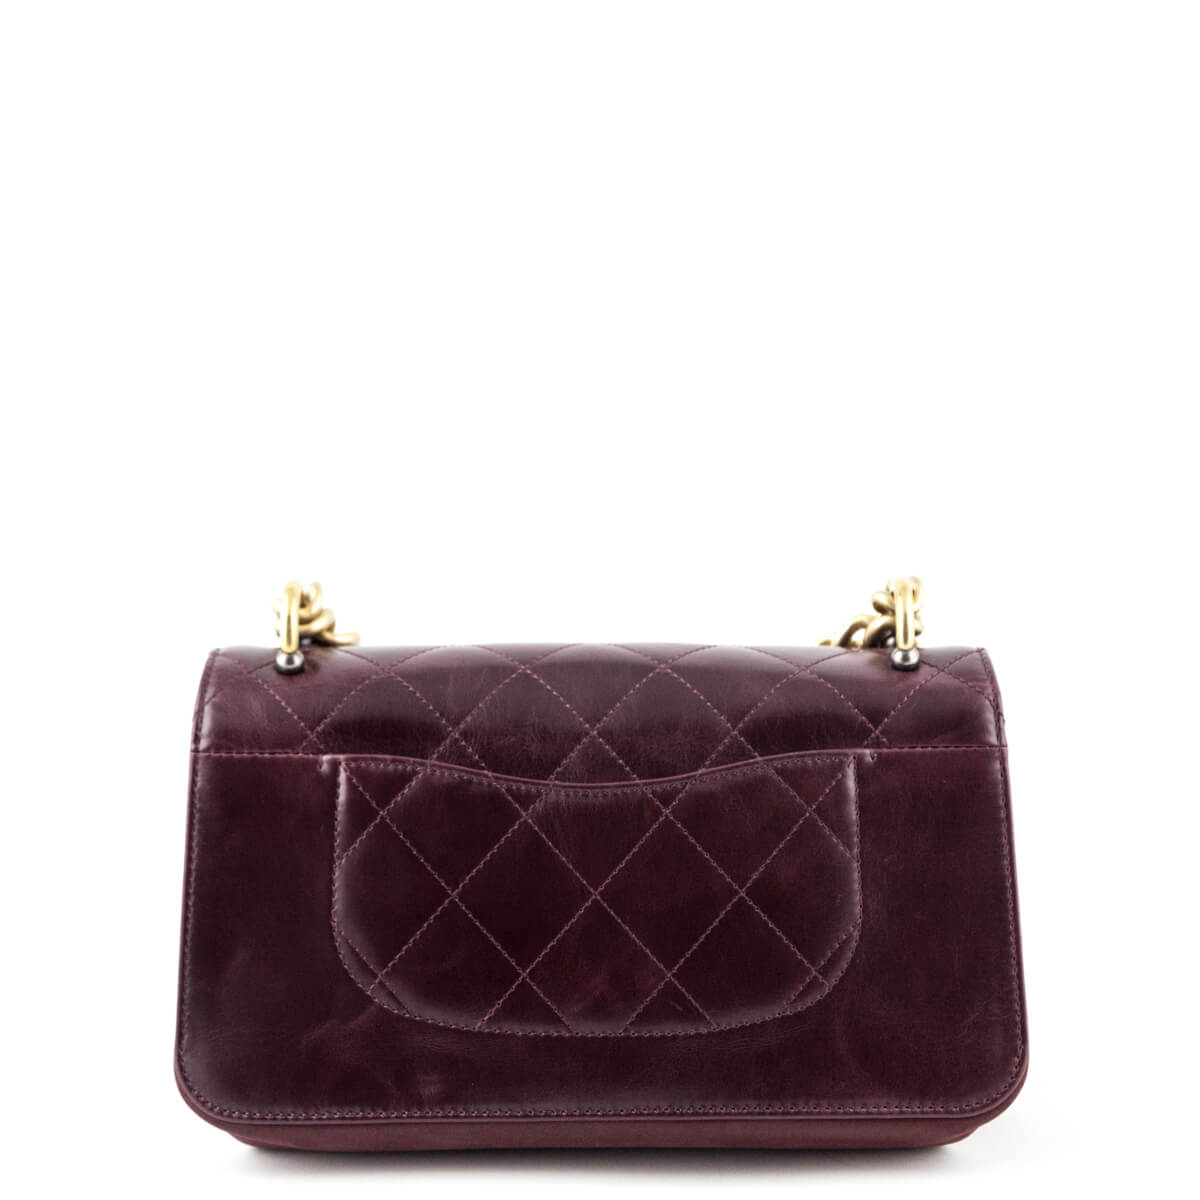 a771eebd00c9 ... Chanel Wine Calfskin Small Straight-Lined Flap Bag - LOVE that BAG -  Preowned Authentic ...